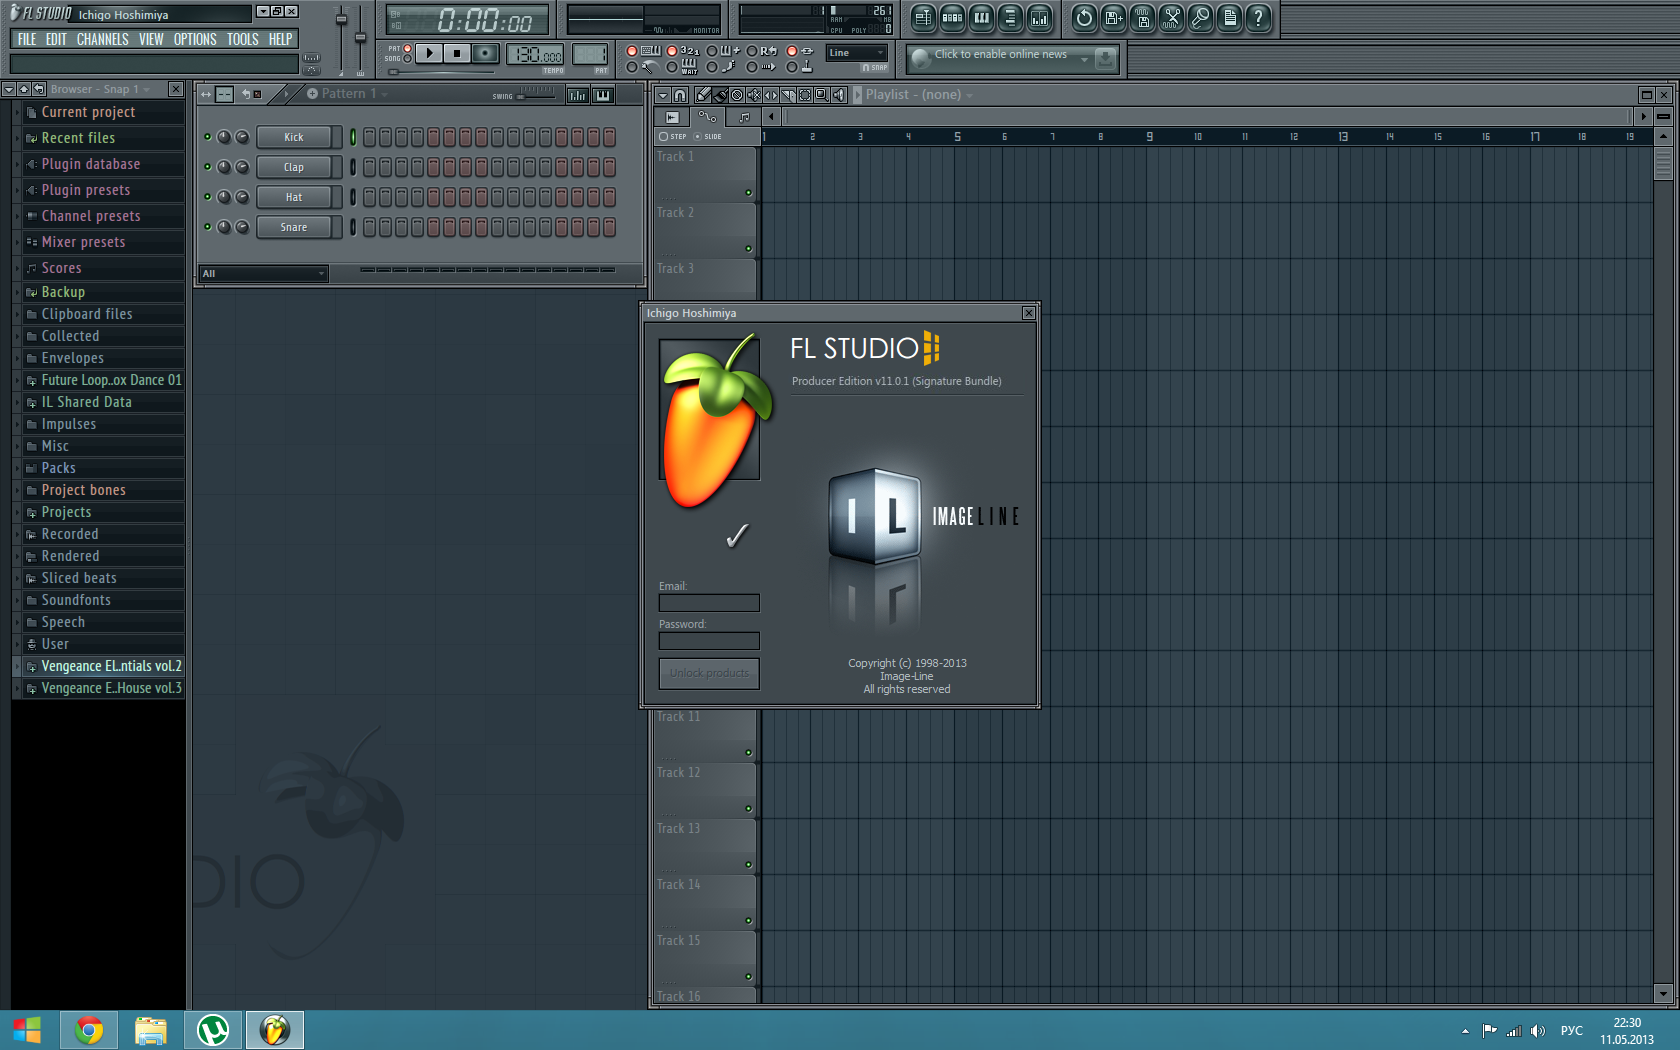 torrent fl studio 12 crack - torrent fl studio 12 crack